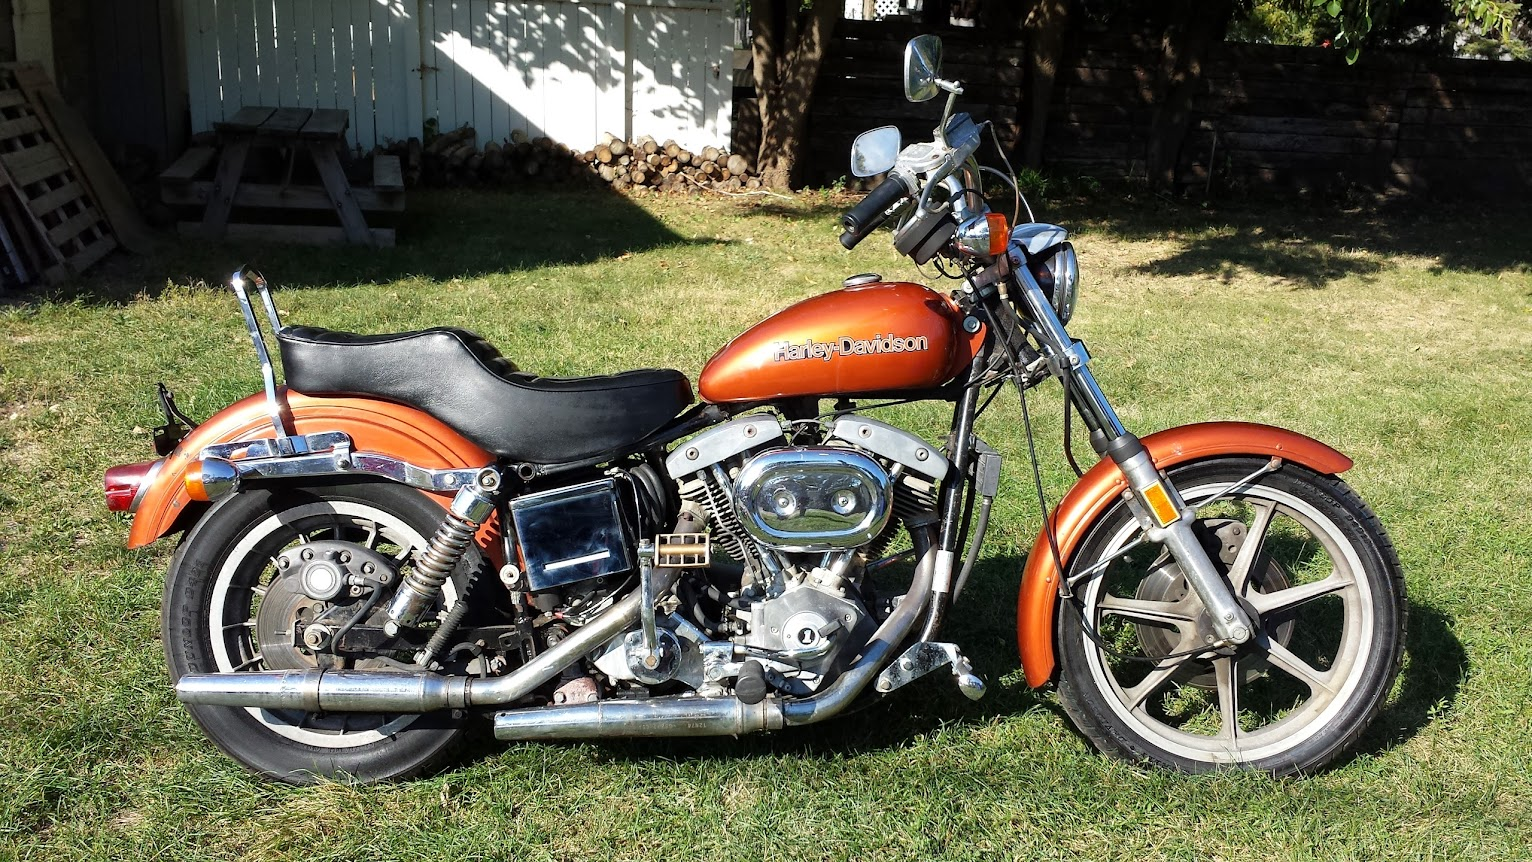 I have heard that only 2500 of the FX/FXE Superglide models were produced  every year. Anyone has any info on that?? I am addicted to this model